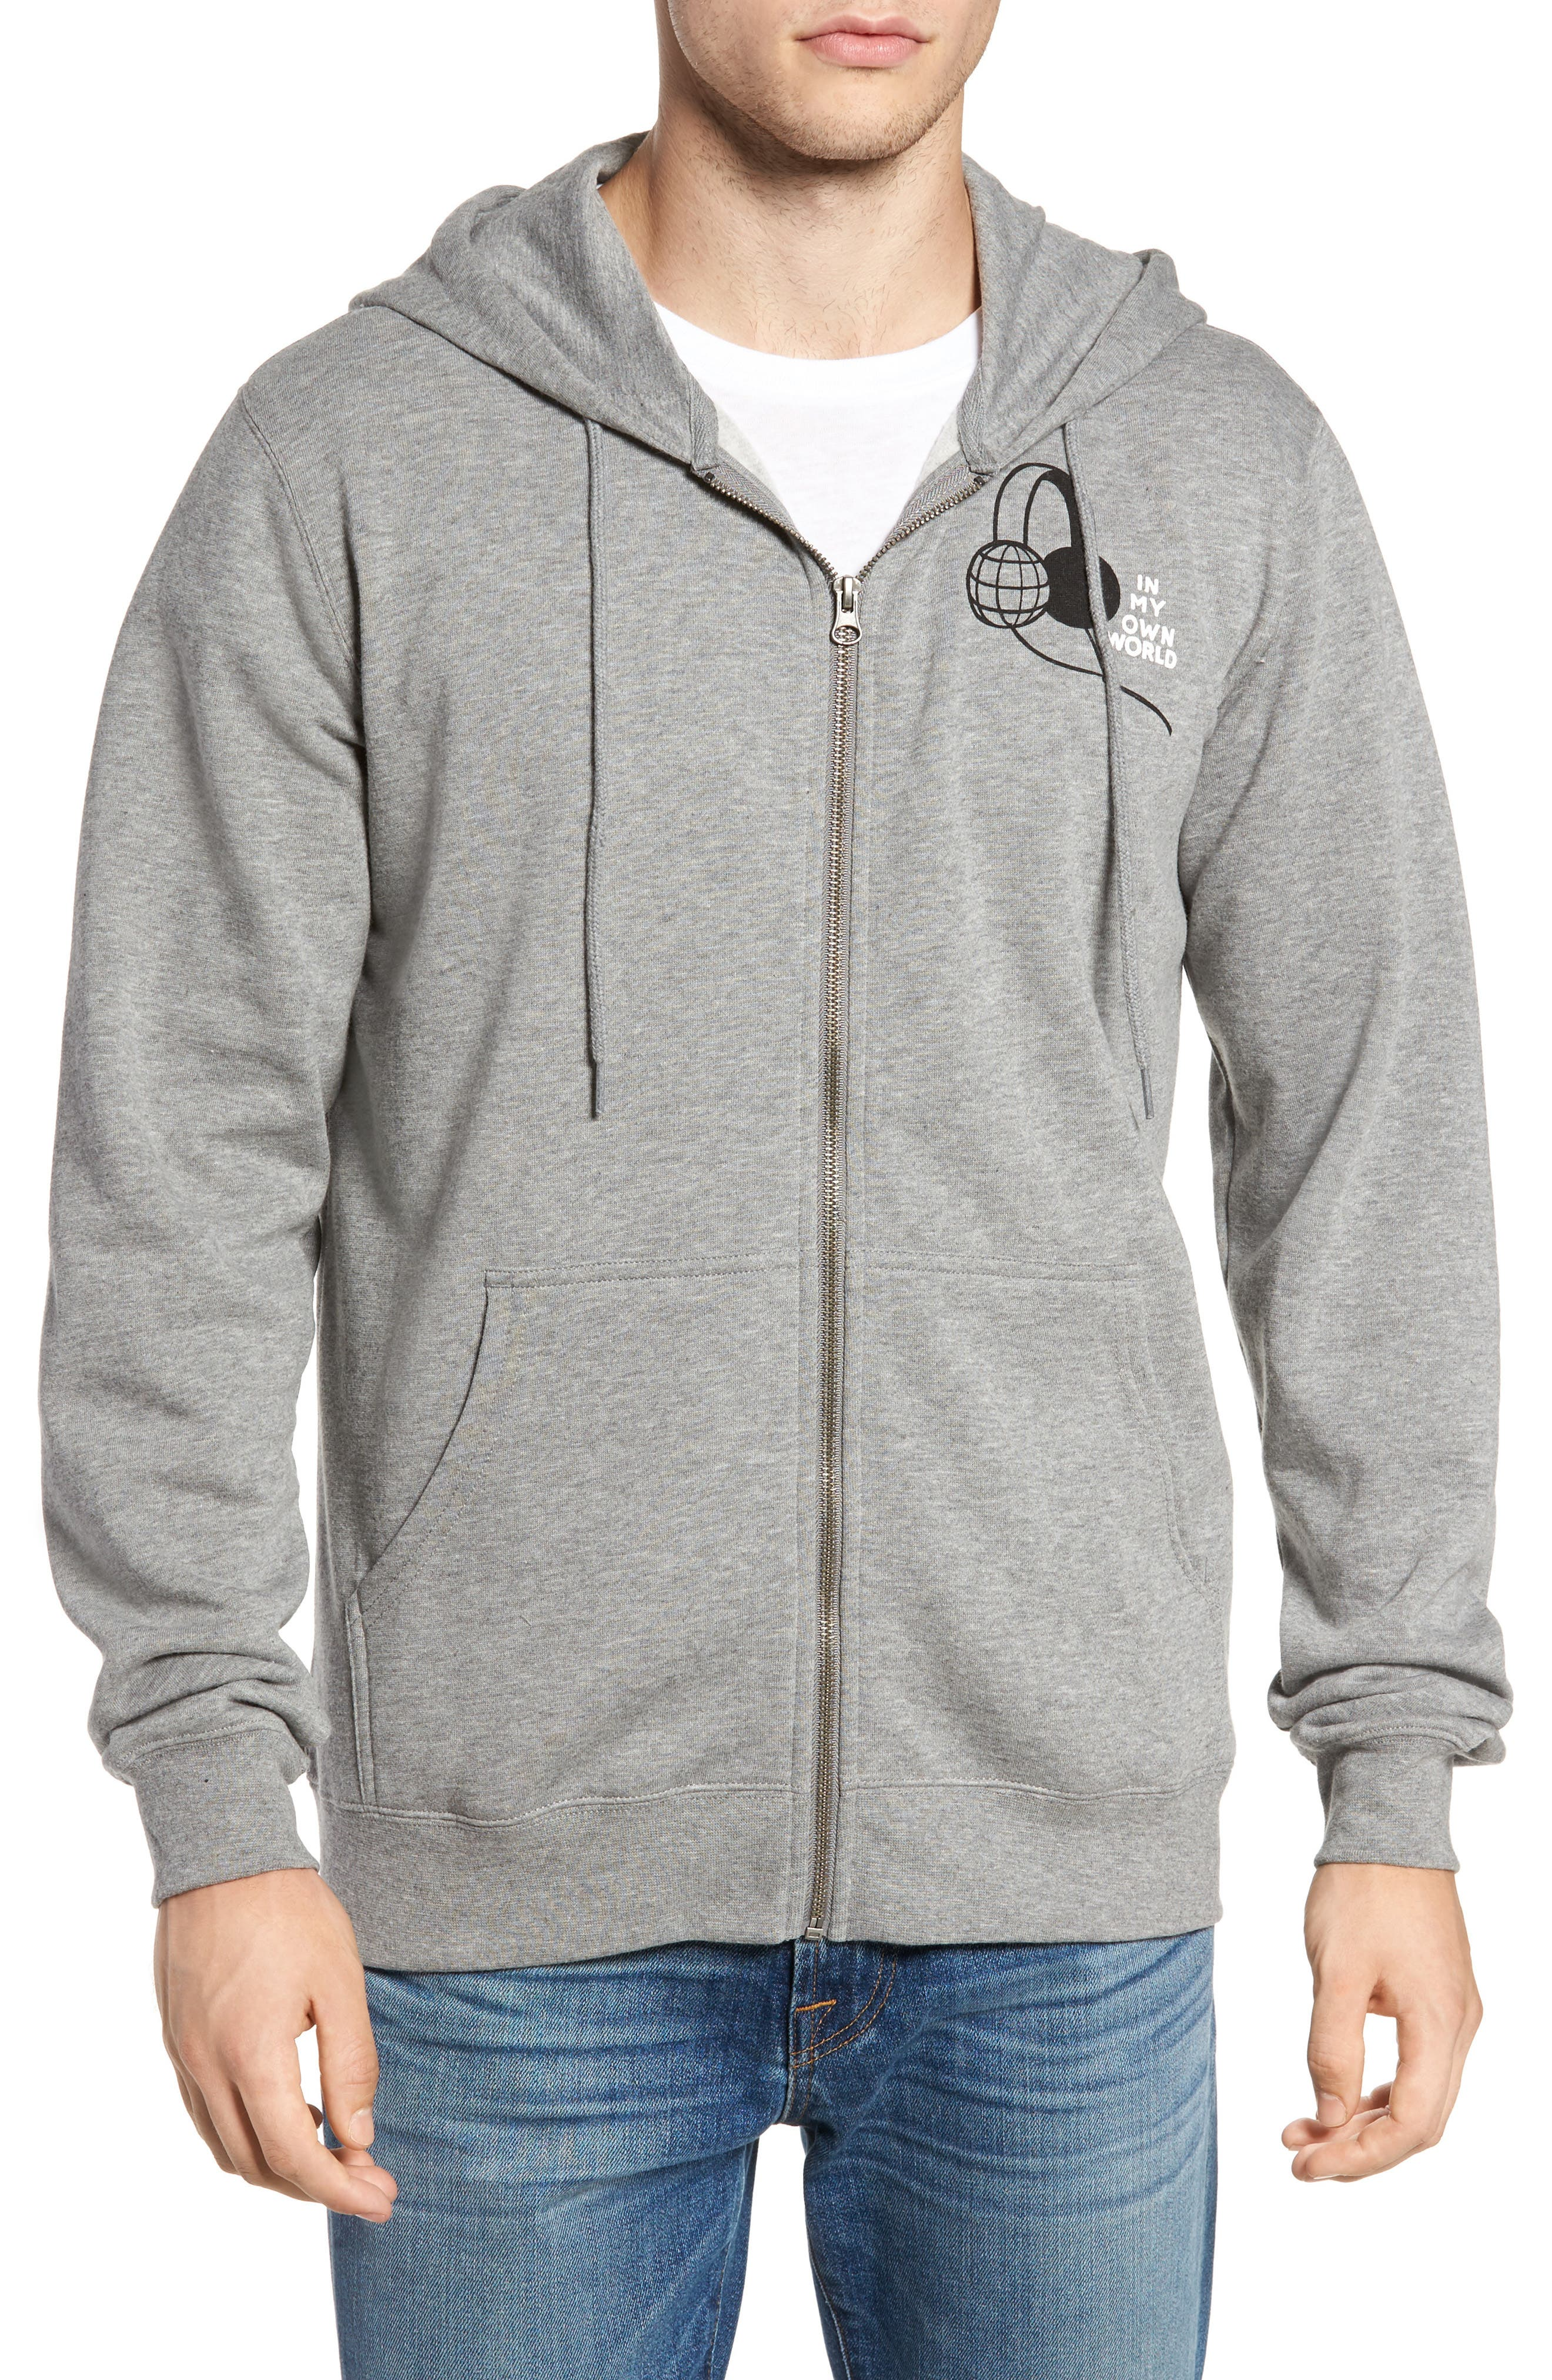 In My Own World Zip Hoodie,                             Main thumbnail 1, color,                             030